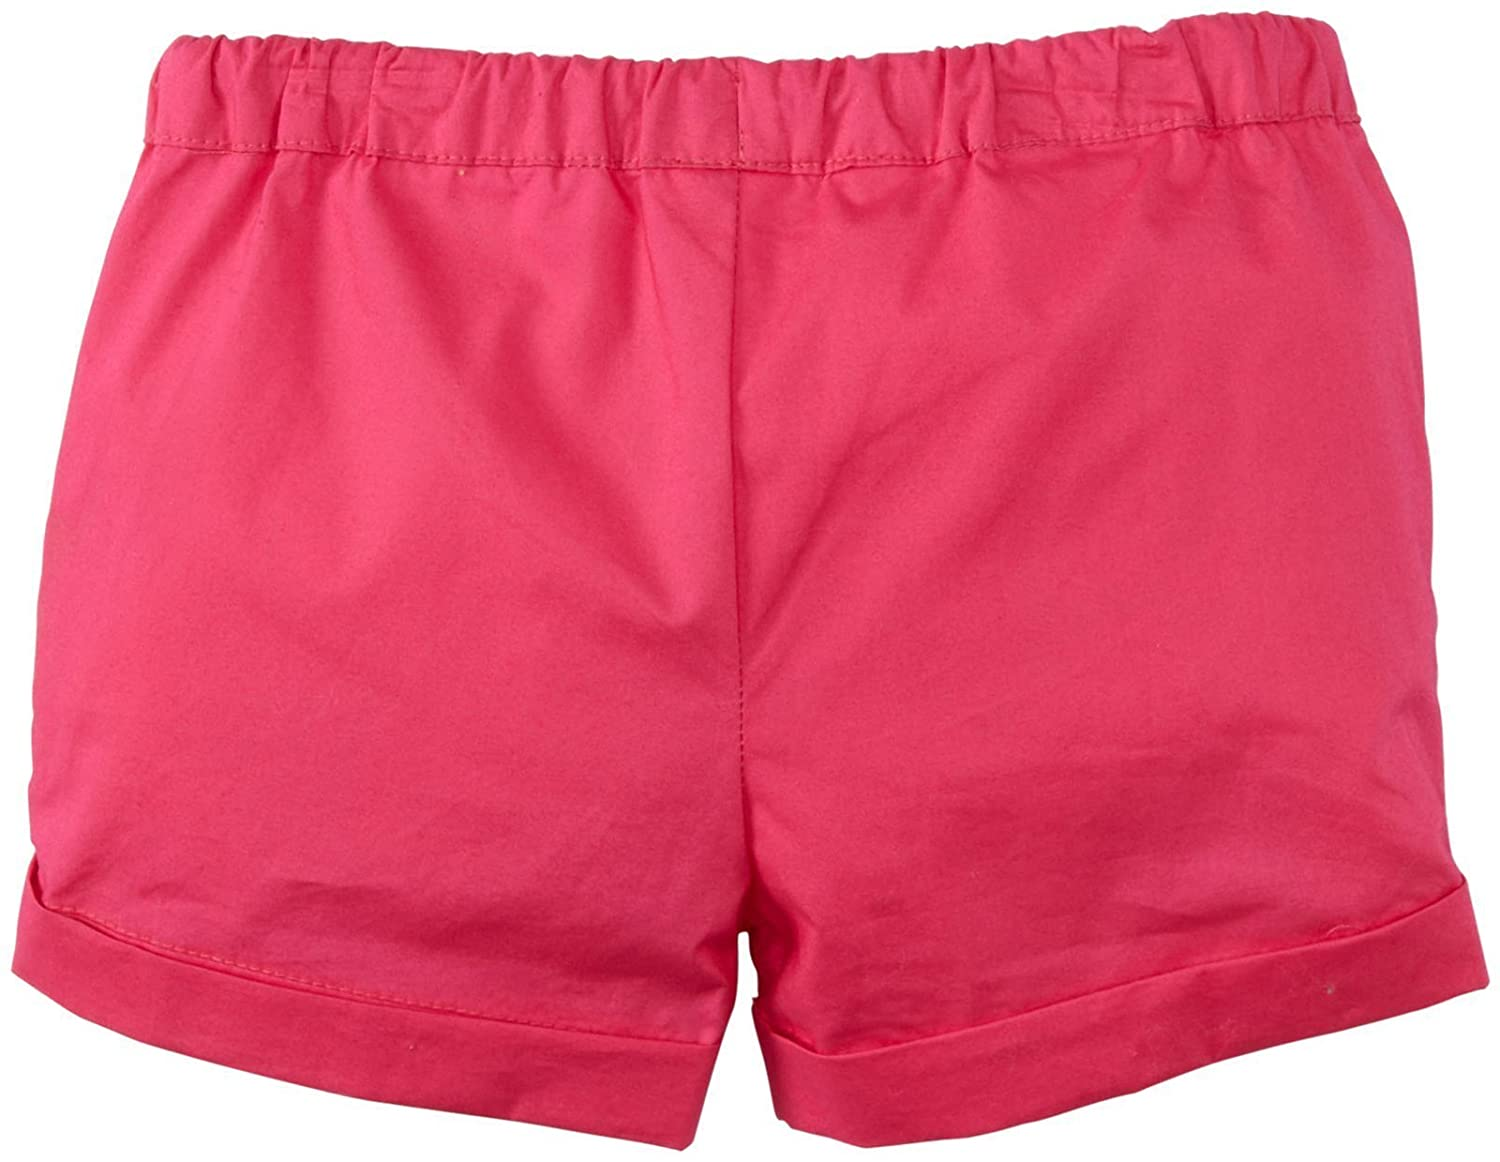 Baby Egg by Susan Lazar Baby Girls Bottom Weight Cotton Bubble Shorts Pink